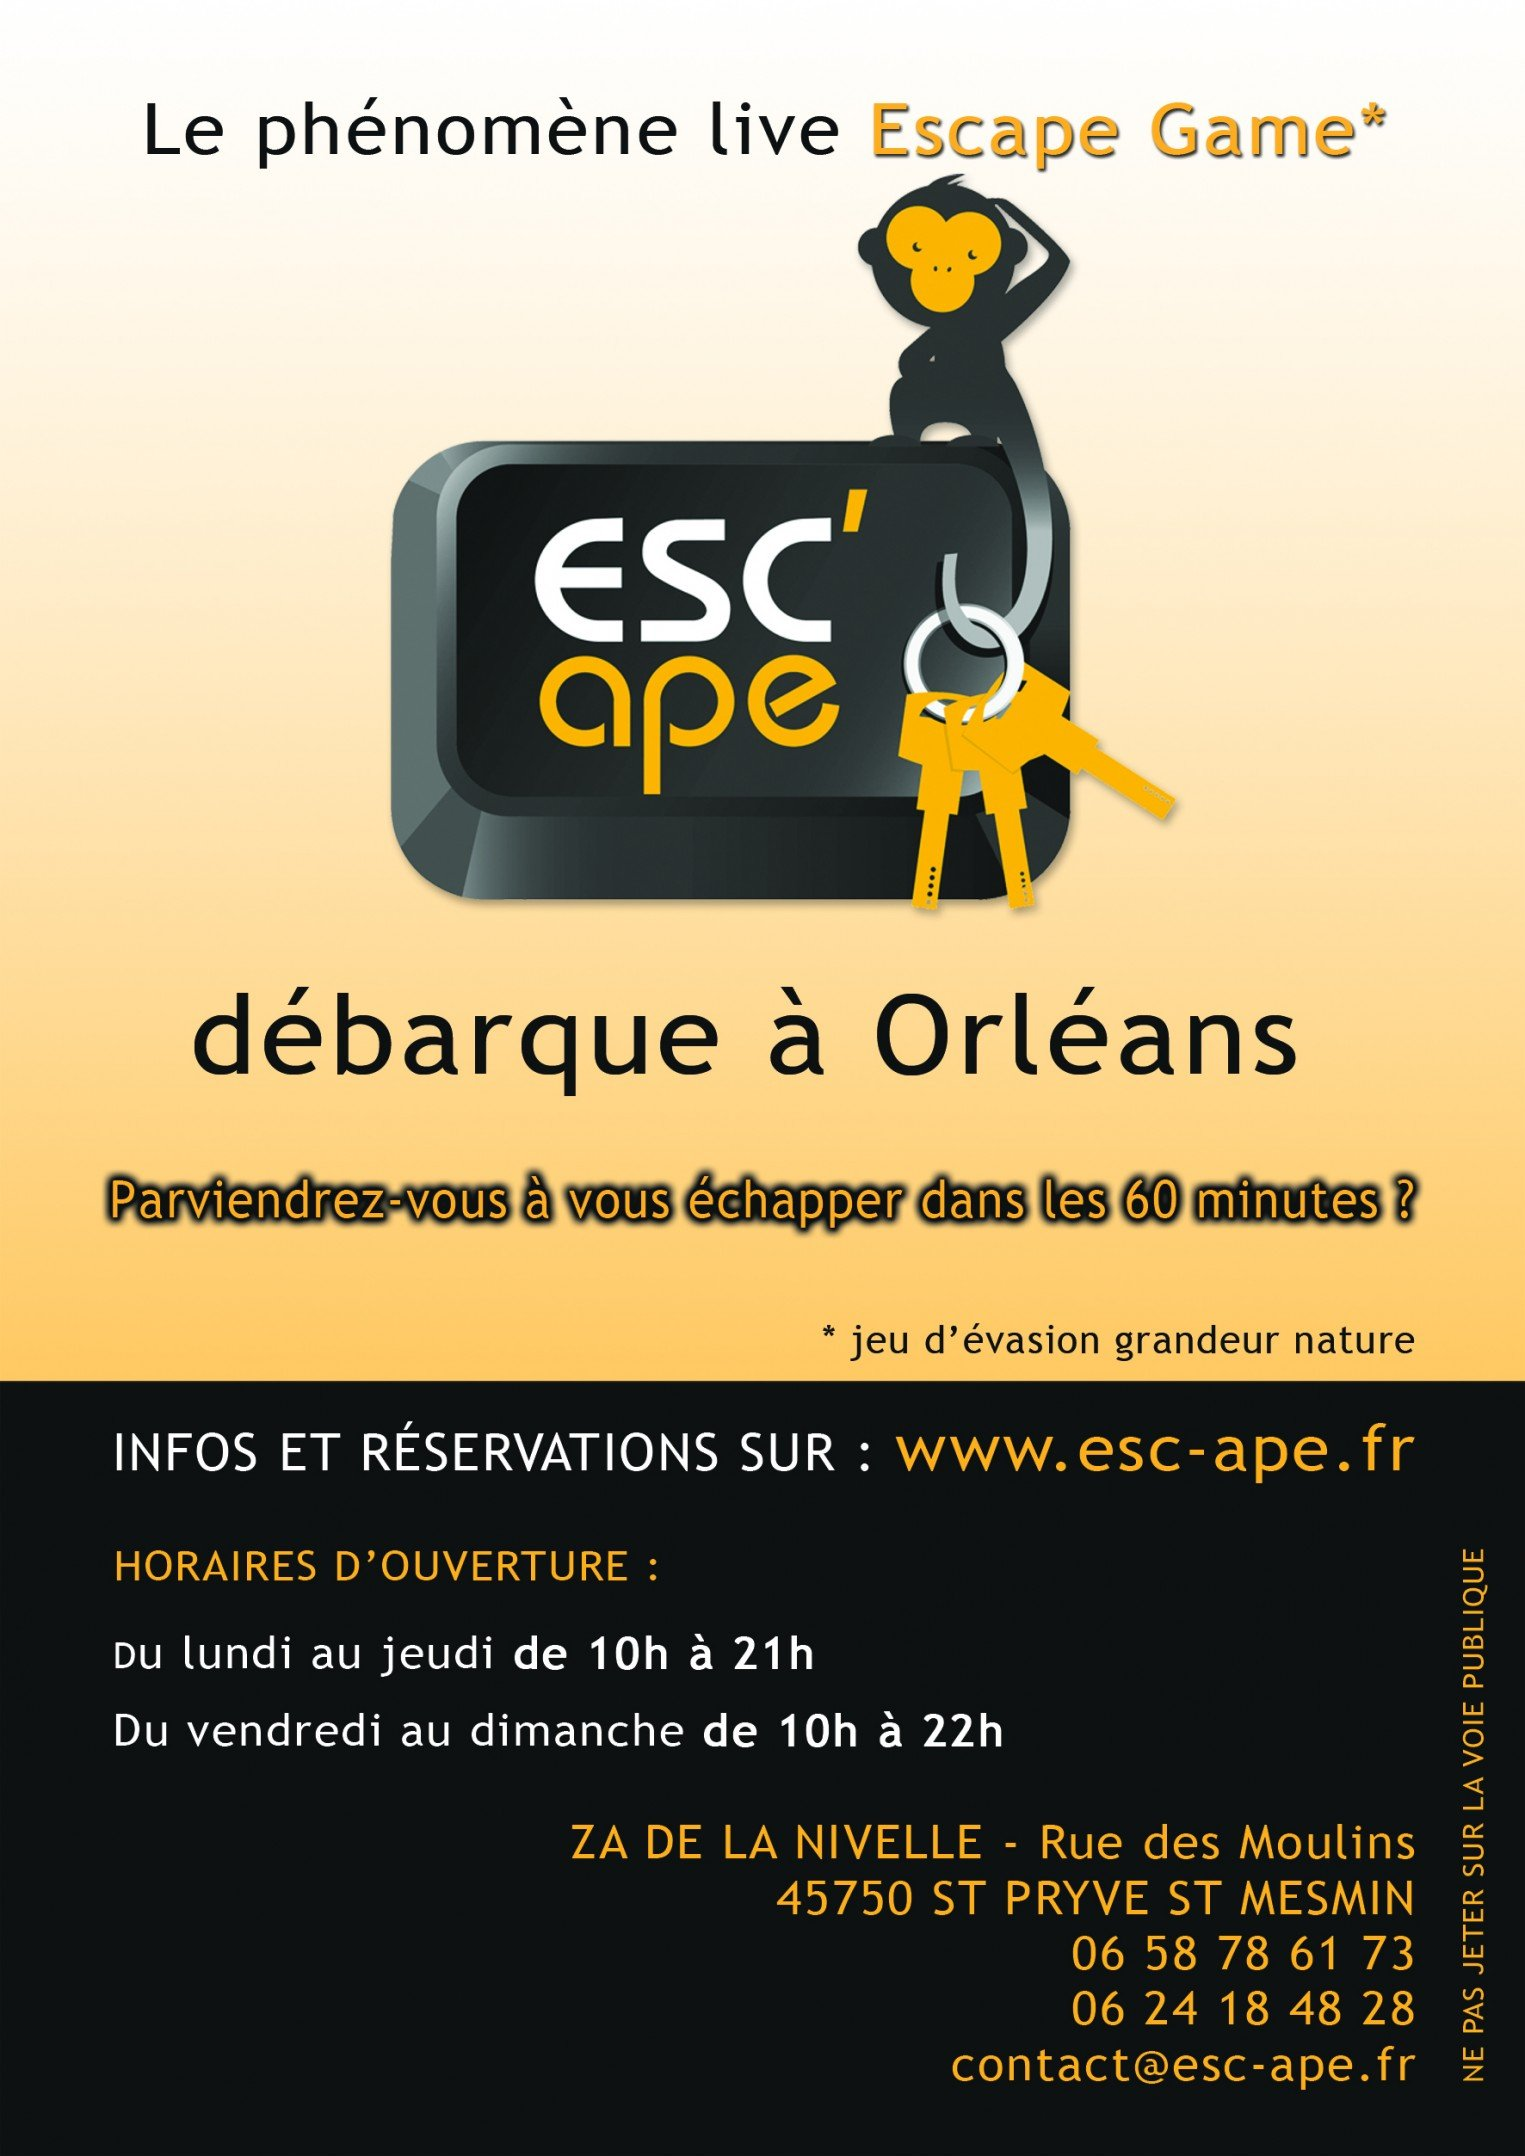 Flyer info Escape Game Orléans Esc ape